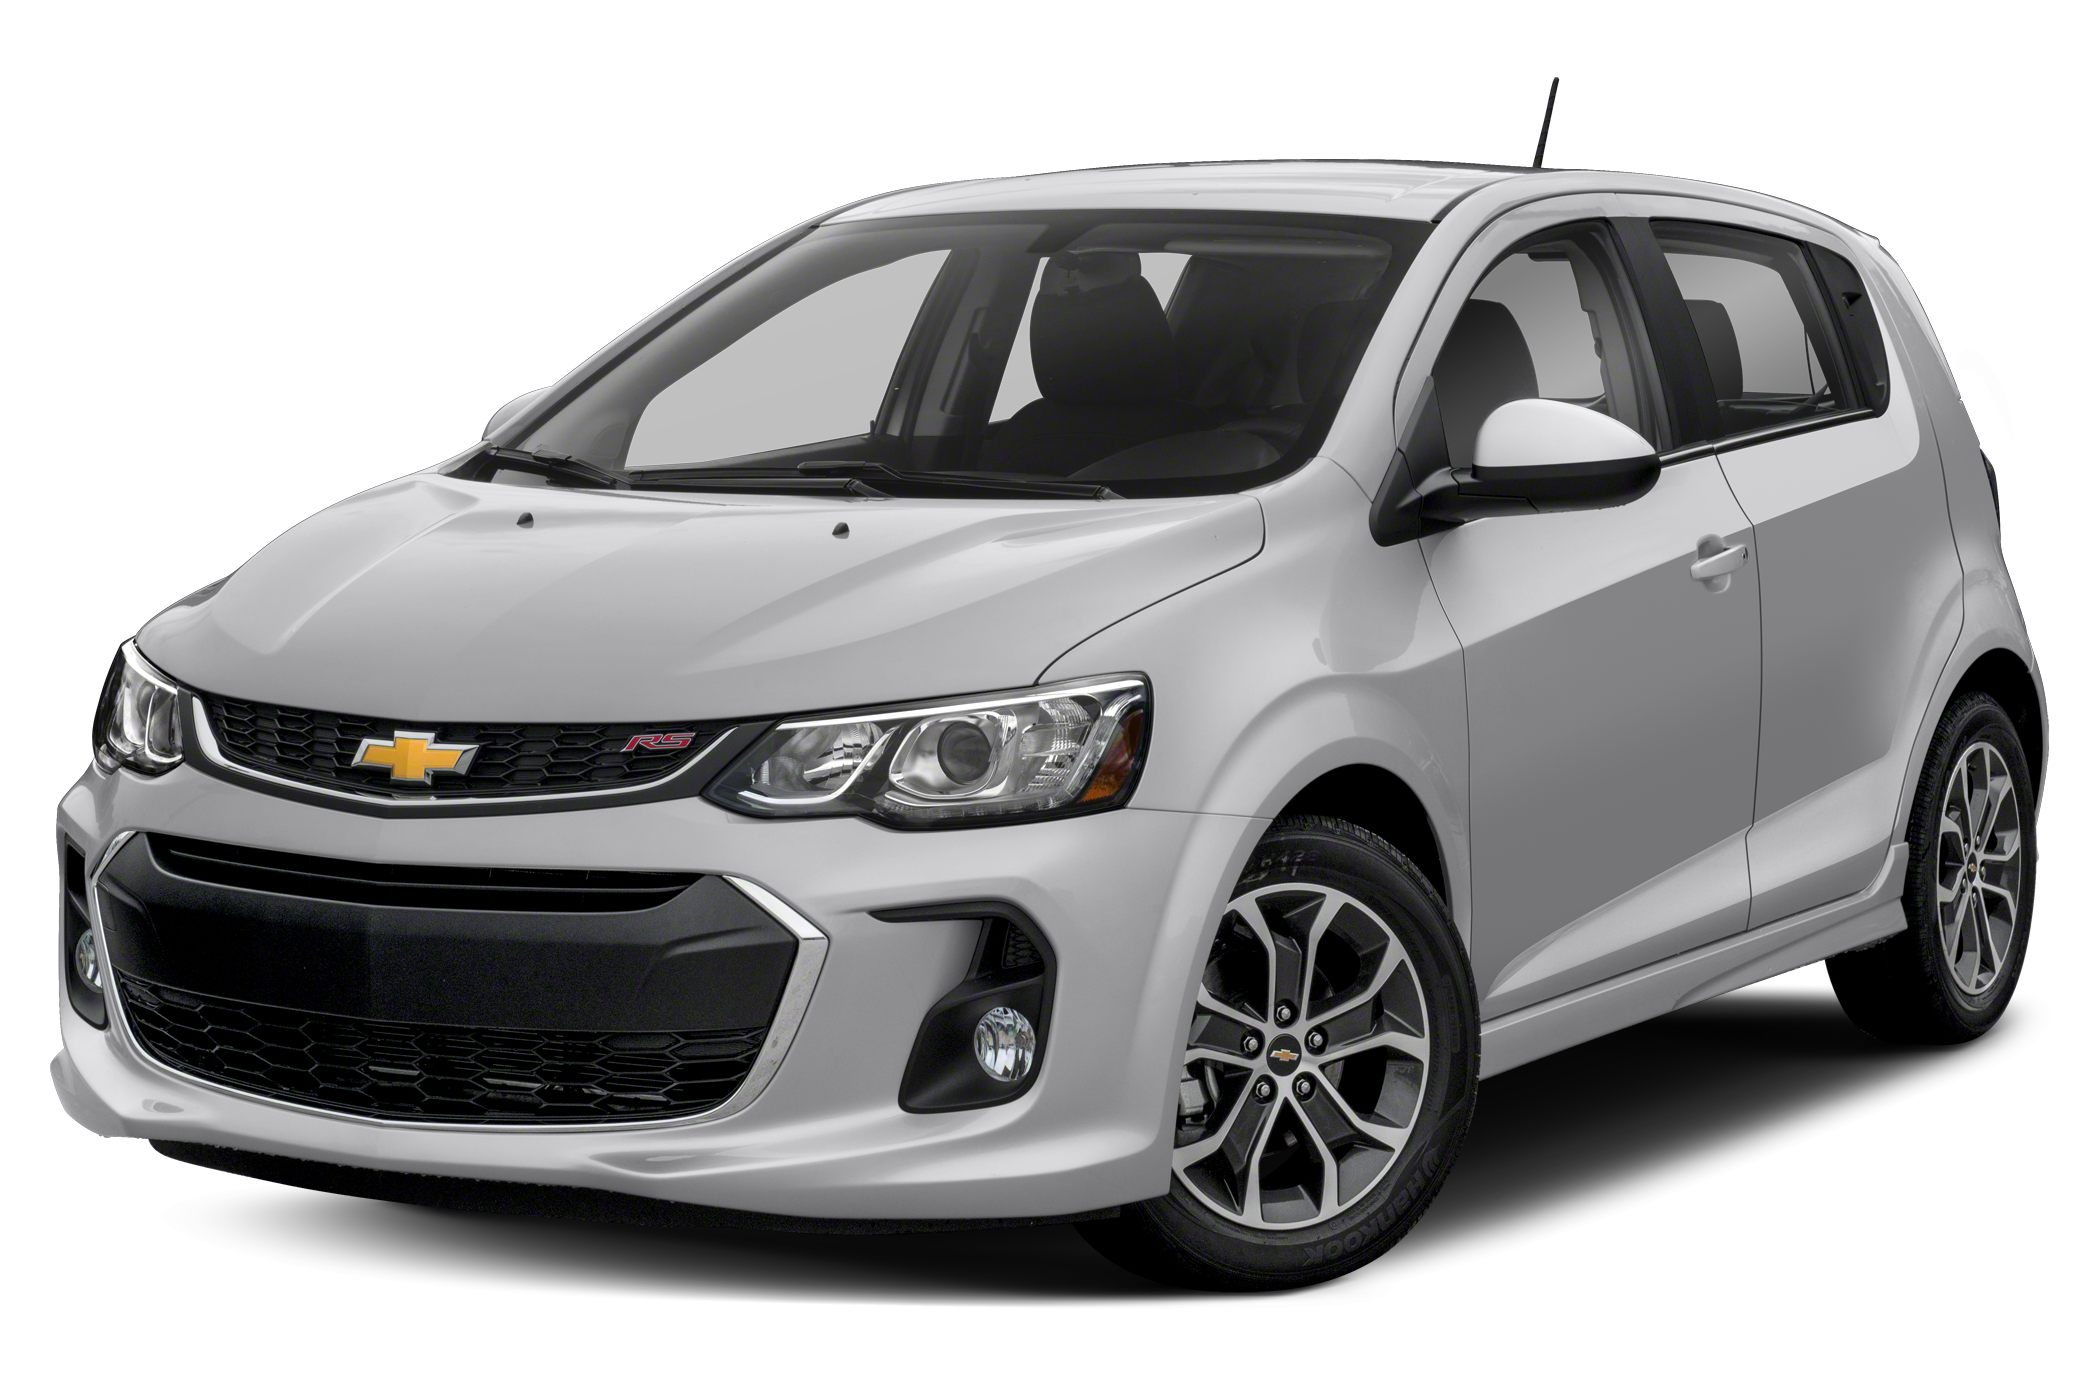 2017 Chevrolet Sonic LT Convenience Package 2 Spare Keys 6-Way Power Driver Seat Adjuster Compa